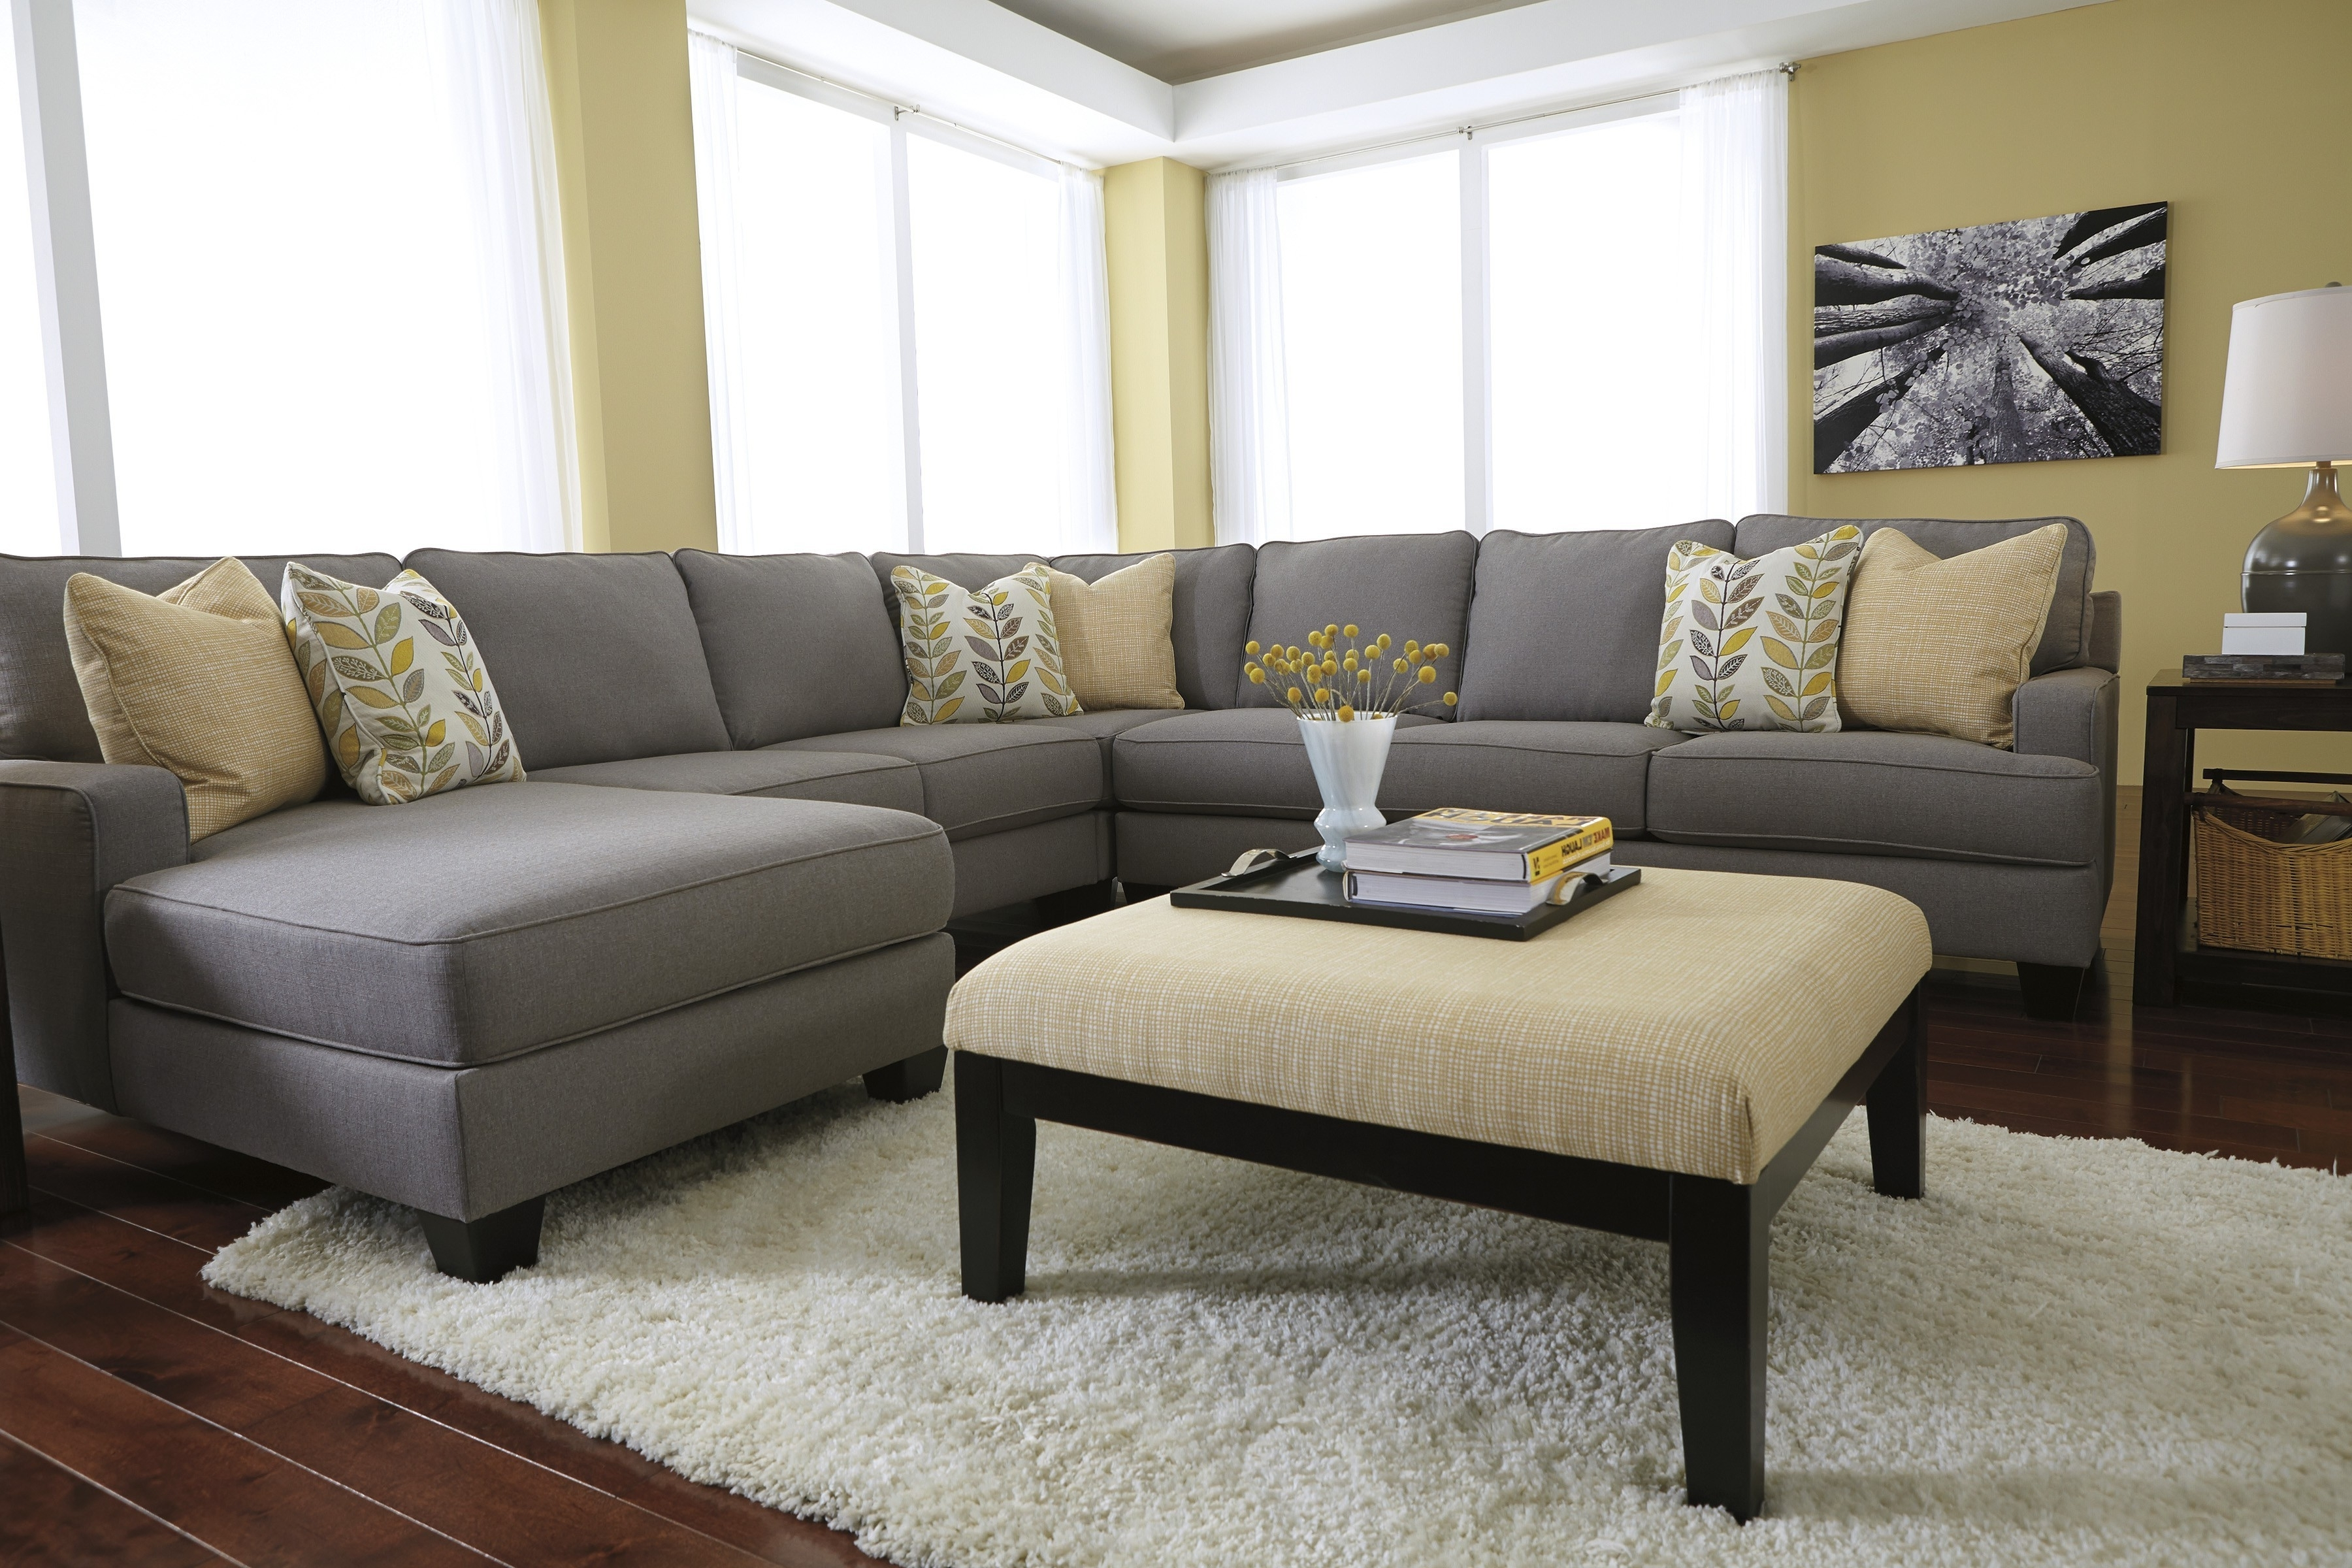 Most Recent Sectional Sofas Decorating Regarding Home Design : Extraordinary Best Modern Fabric Sectional Sofas (View 8 of 20)